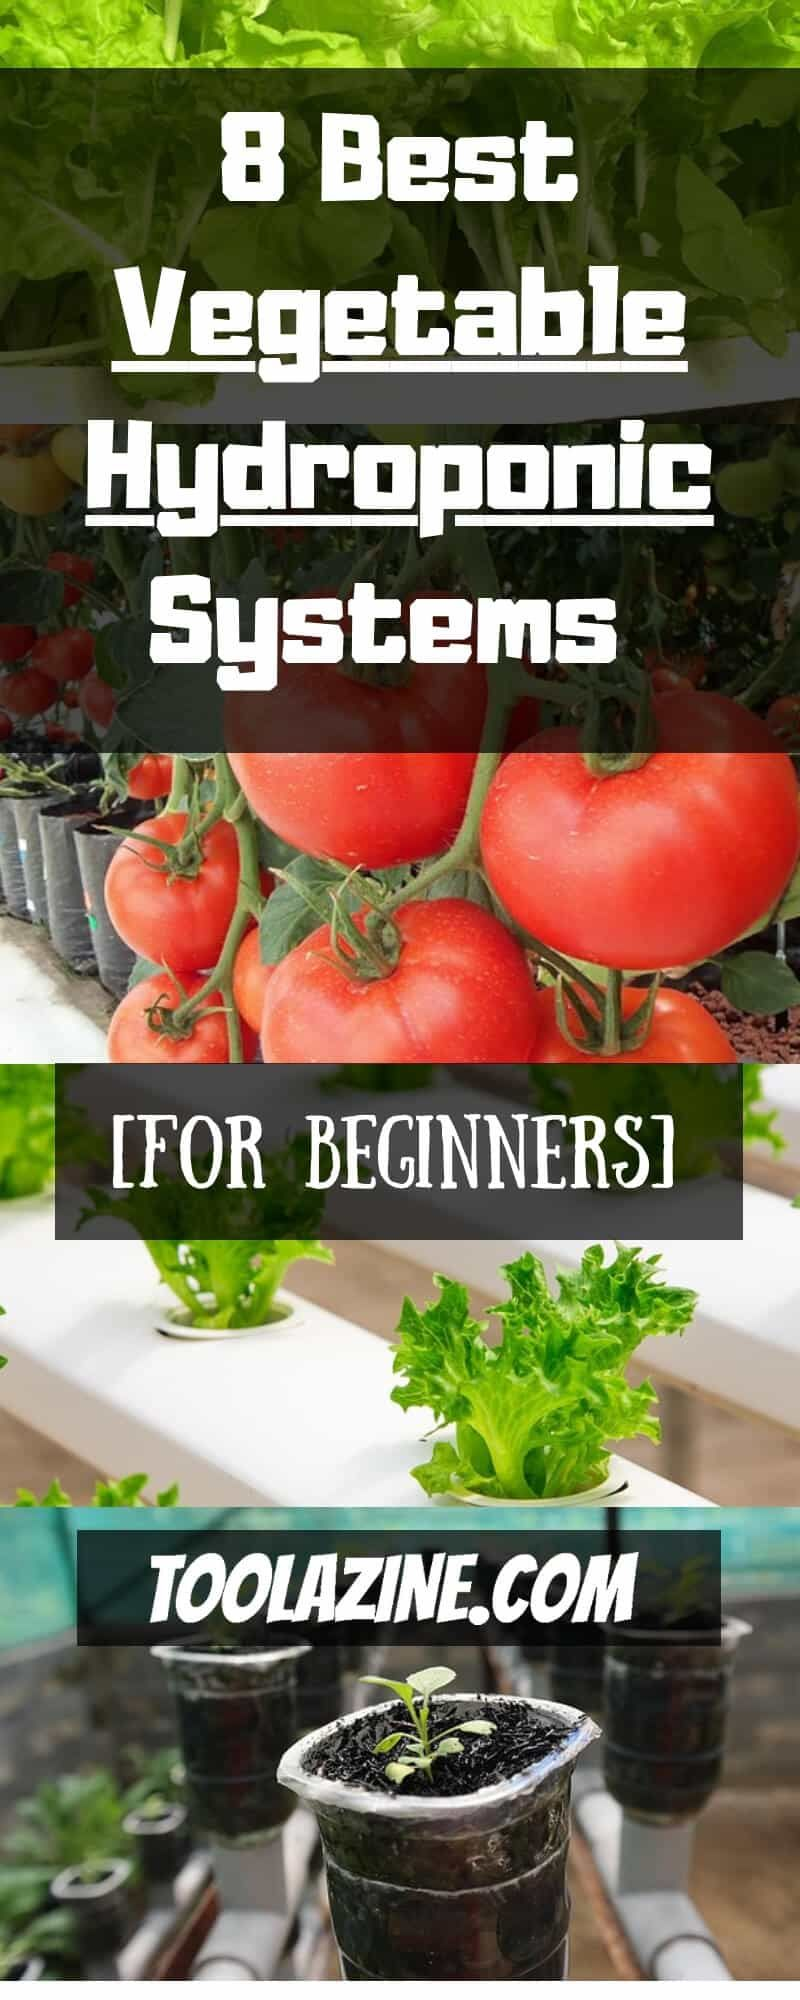 8 Best Vegetable Hydroponic Systems For Beginners is part of Hydroponics system, Hydroponics, Hydroponics diy, Hydroponic gardening, Hydroponic growing, Gardening for beginners - Table of ContentsAbout HydroponicsHighly Rated Hydroponic SystemsGeneral Hydroponics EcoGrower Drip Hydroponic SystemHydroponics Grower Kit, PATHONOR 11 Pods 3 5 Gal Self Watering DIY Planting Cloner Kit Educational Hydroponics System for Transplant, Cloning, Propagation, and Hydroponic Experiment Indoor OutdoorHTGSupply 3 5Gallon Bubble Boy     Read More